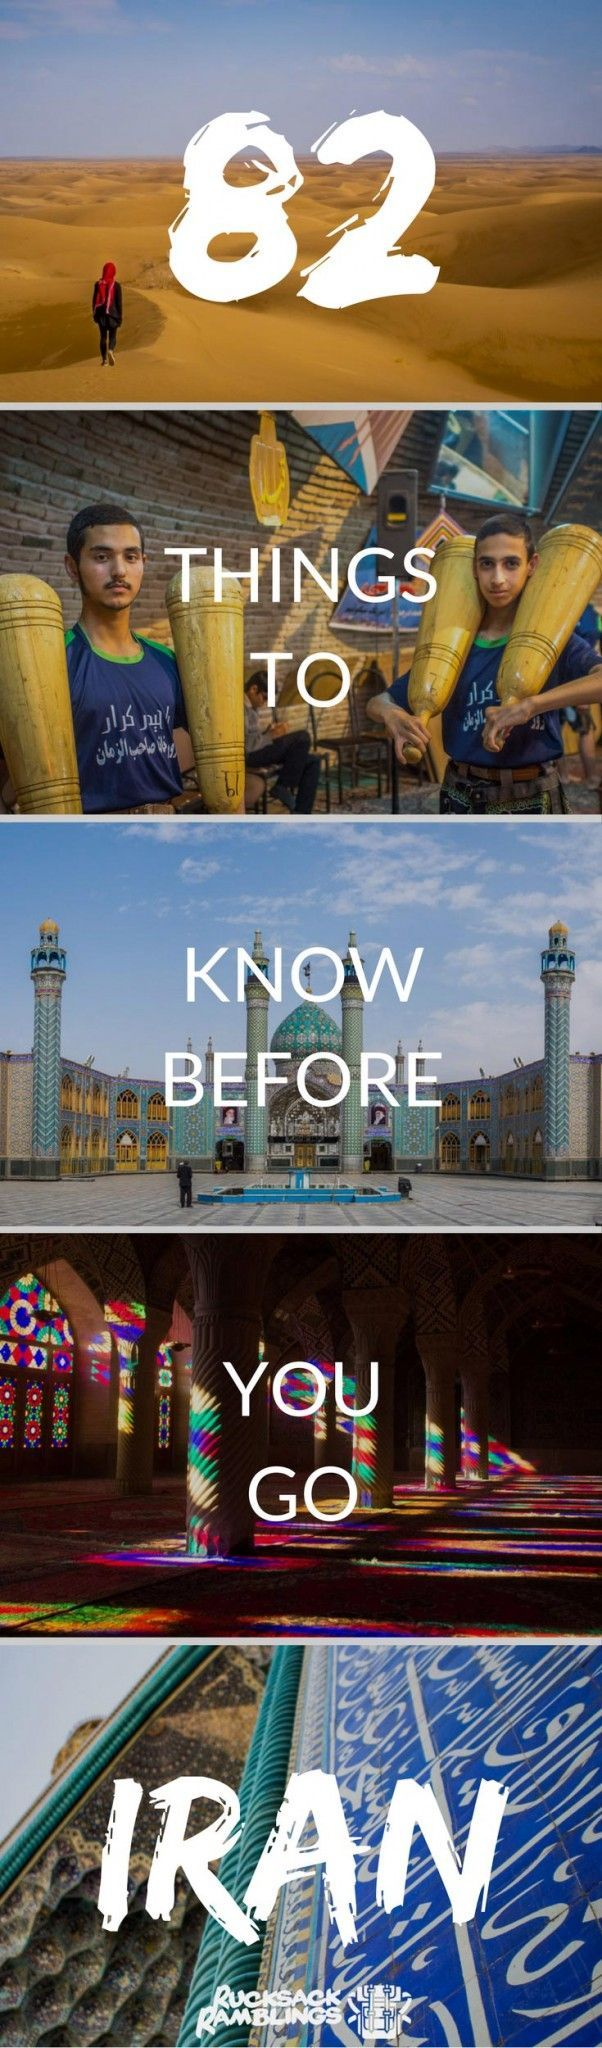 Best Middle East Travel Images On Pinterest Asia Travel - 8 things to know before visiting the middle east